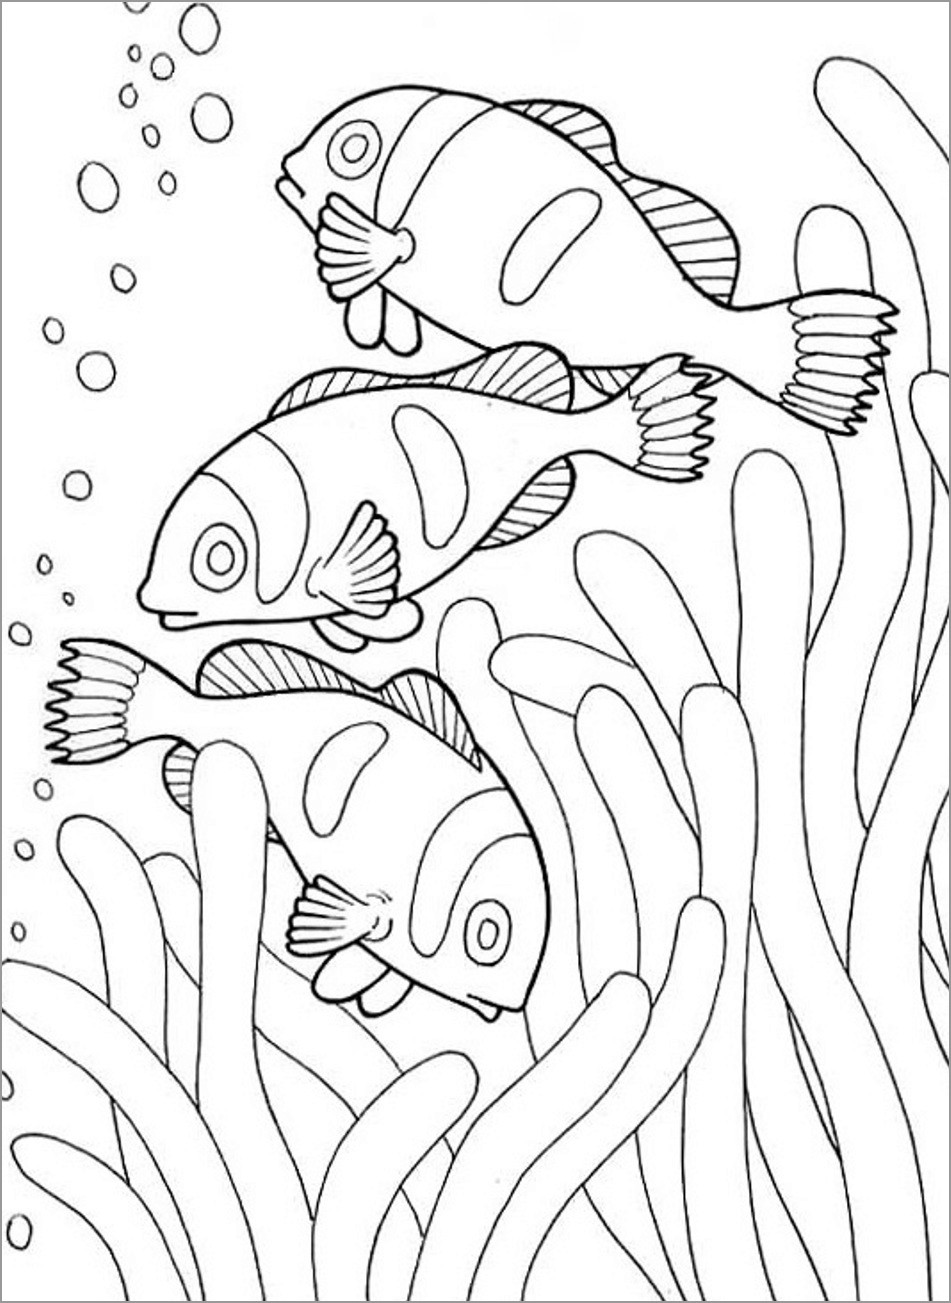 ocean animals printable coloring pages clownfish coloring pages coloringbay printable animals ocean coloring pages